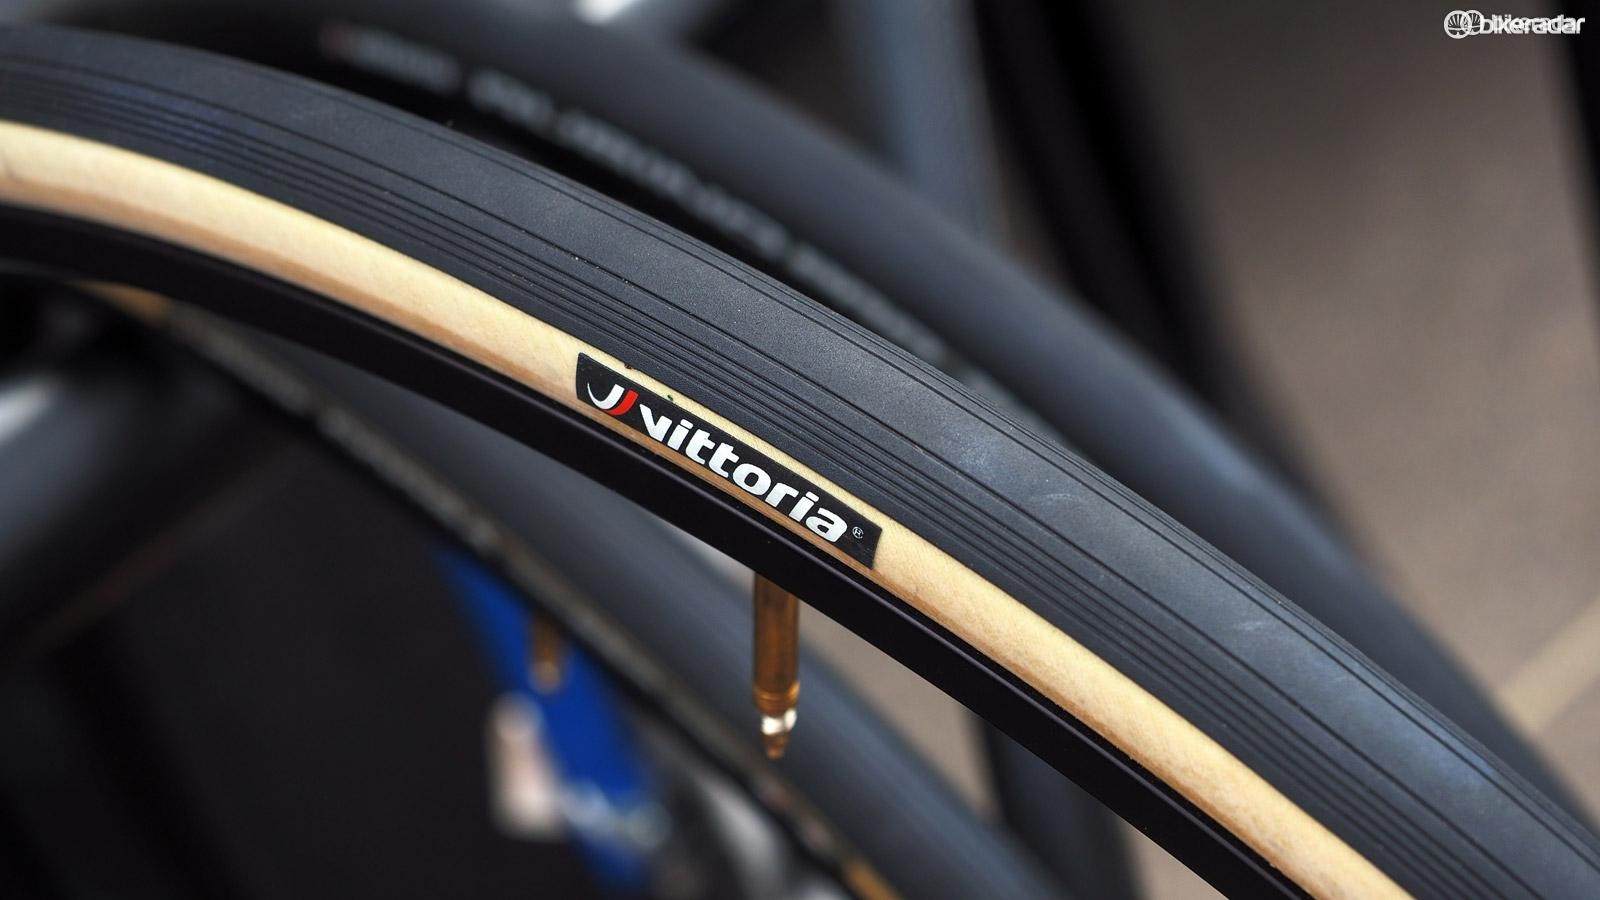 Vittoria says its new Corsa Speed tubeless clincher is the fastest tire ever measured by the folks at Wheel Energy in Nastola, Finland